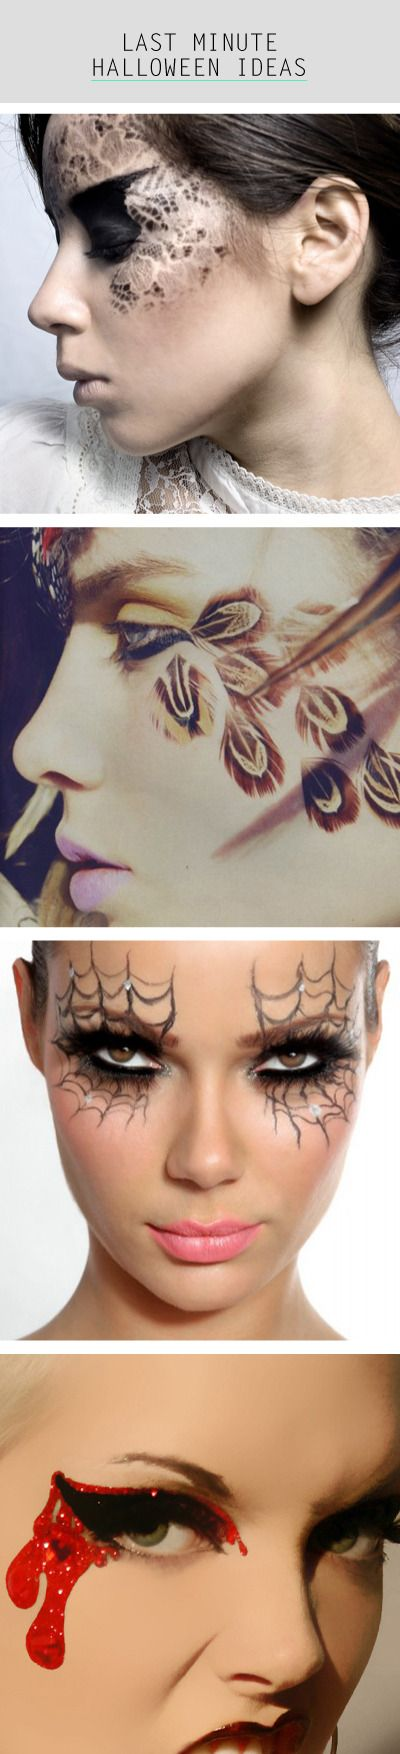 Last Minute Halloween Makeup Ideas  come to school on oct/31 and u will sure get response with cool make up like this!!